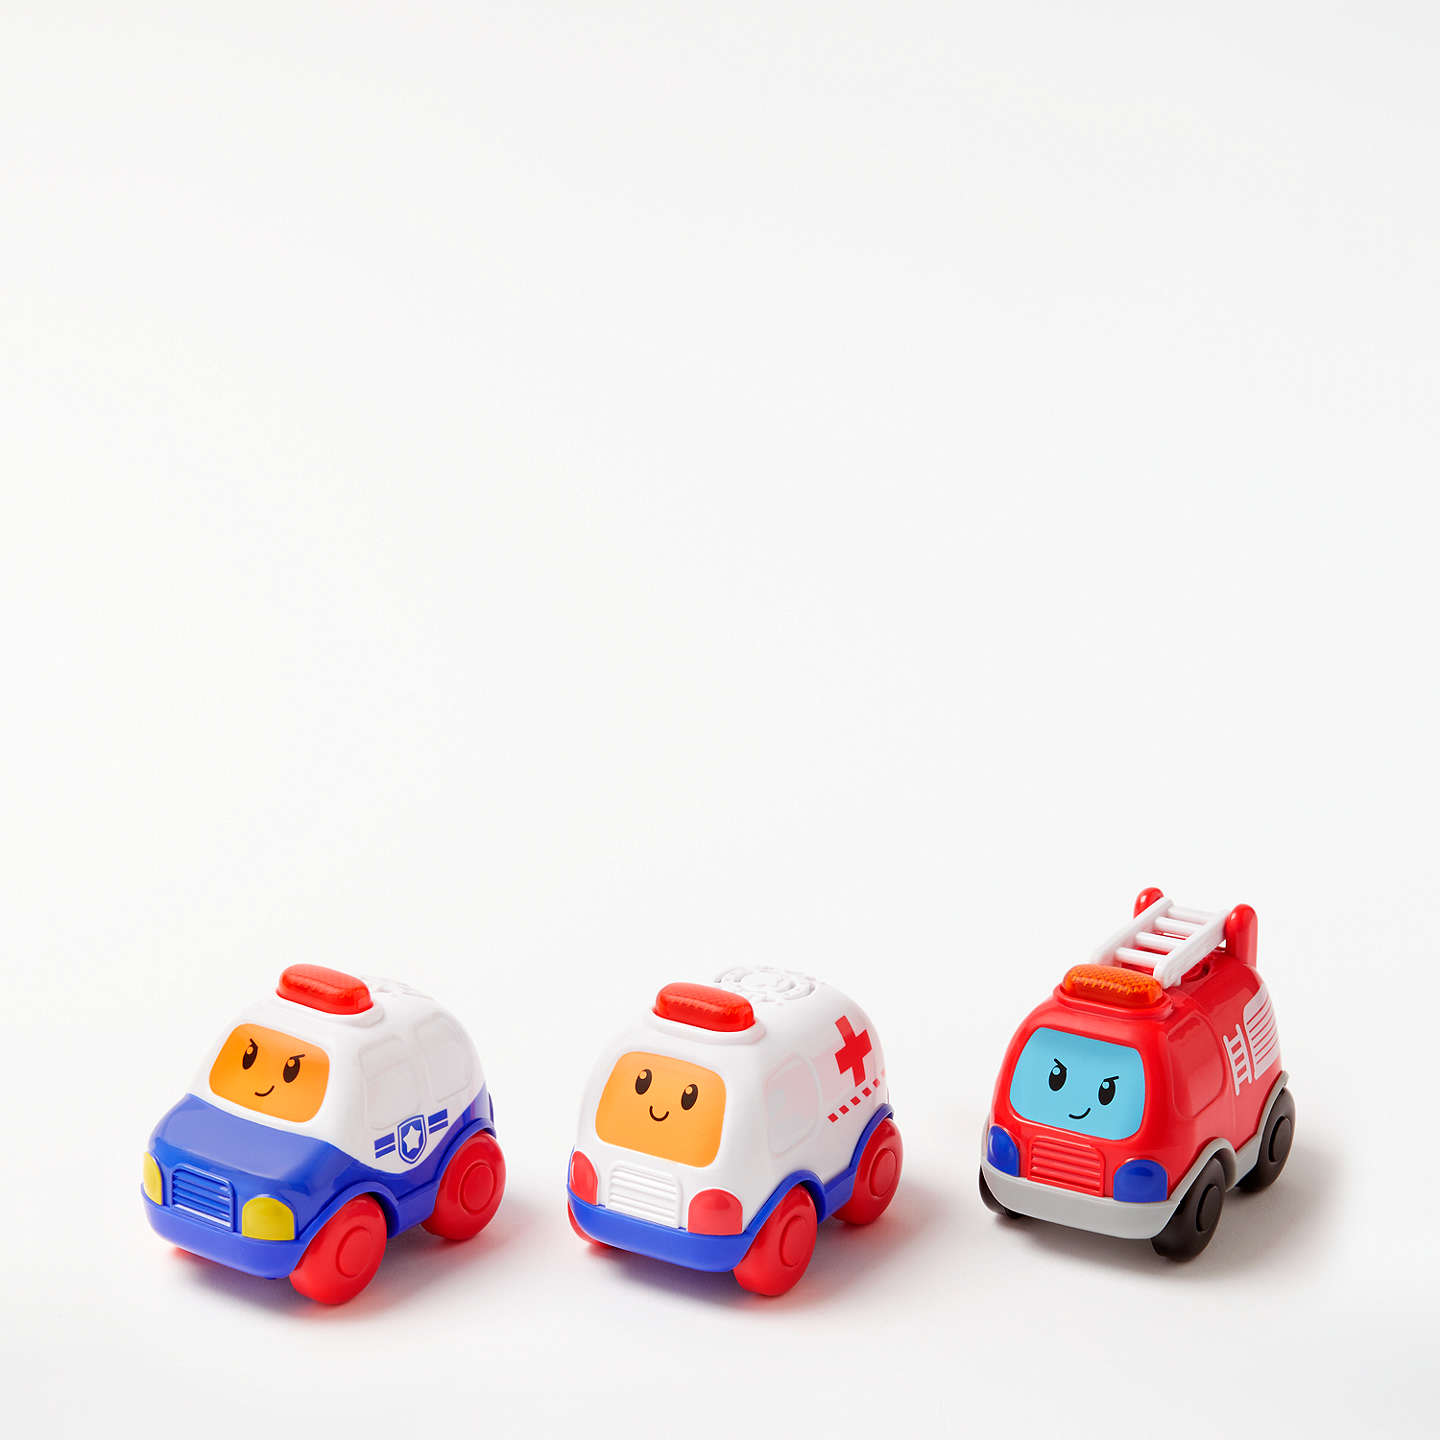 BuyJohn Lewis Emergency Vehicle Toy Cars, Pack of 3 Online at johnlewis.com